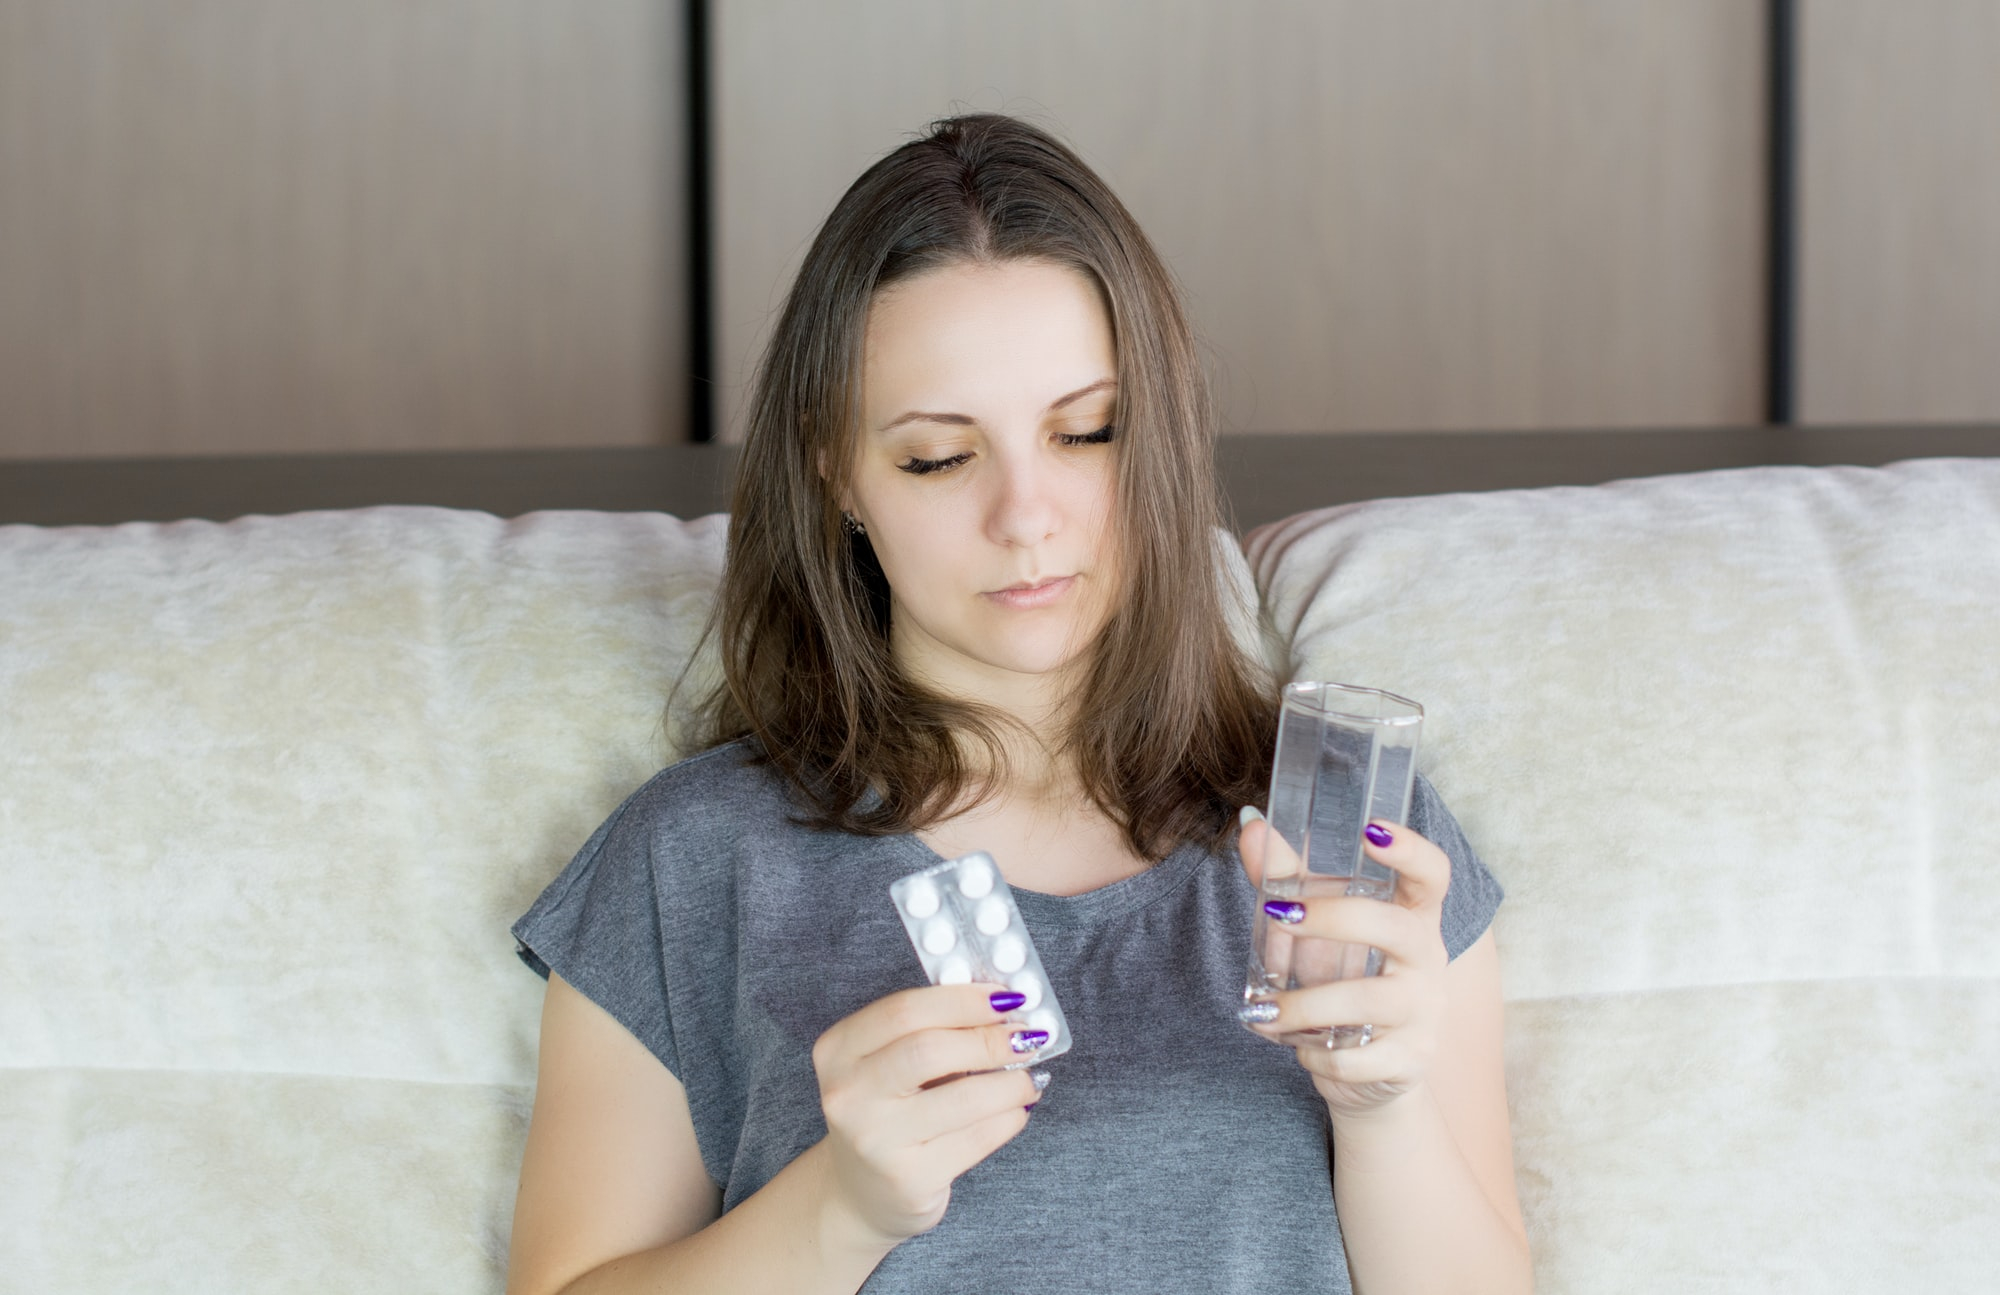 Woman suffers headache, takes pill while sitting in sofa with glass of water.